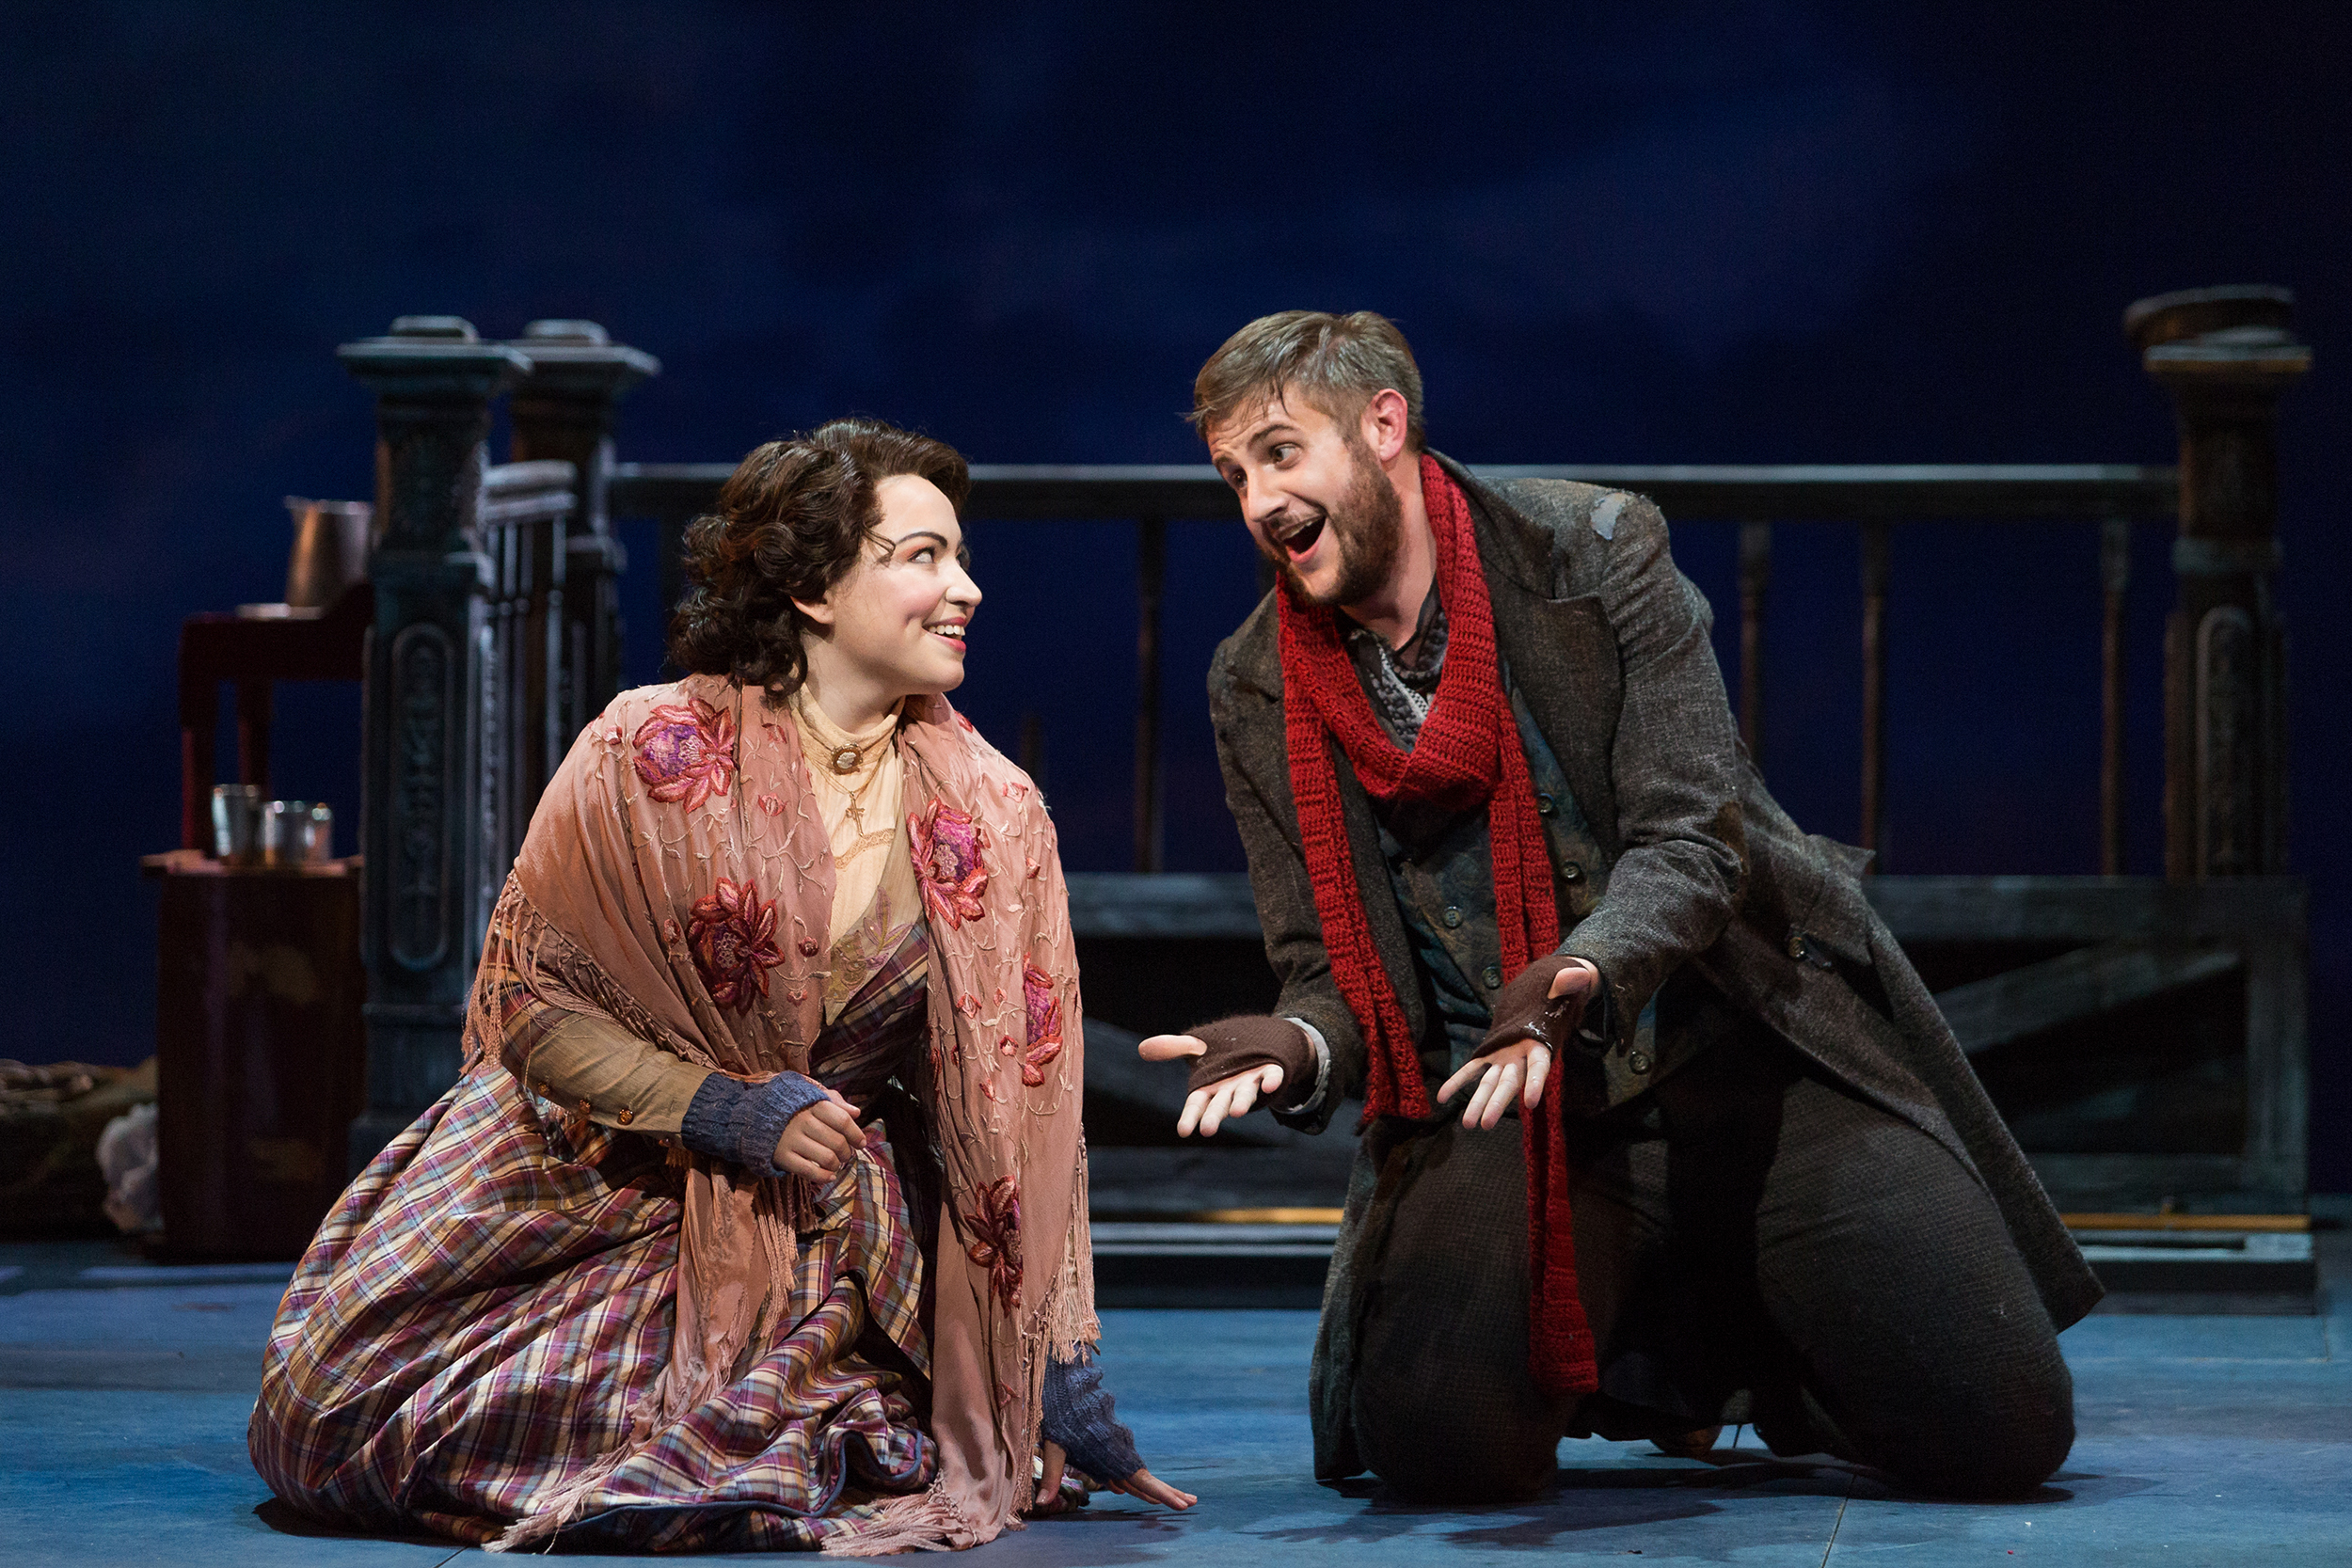 Michael Brandenburg as Rodolfo and Raquel González as Mimì in The Glimmerglass Festival production of Puccini's  La bohème .